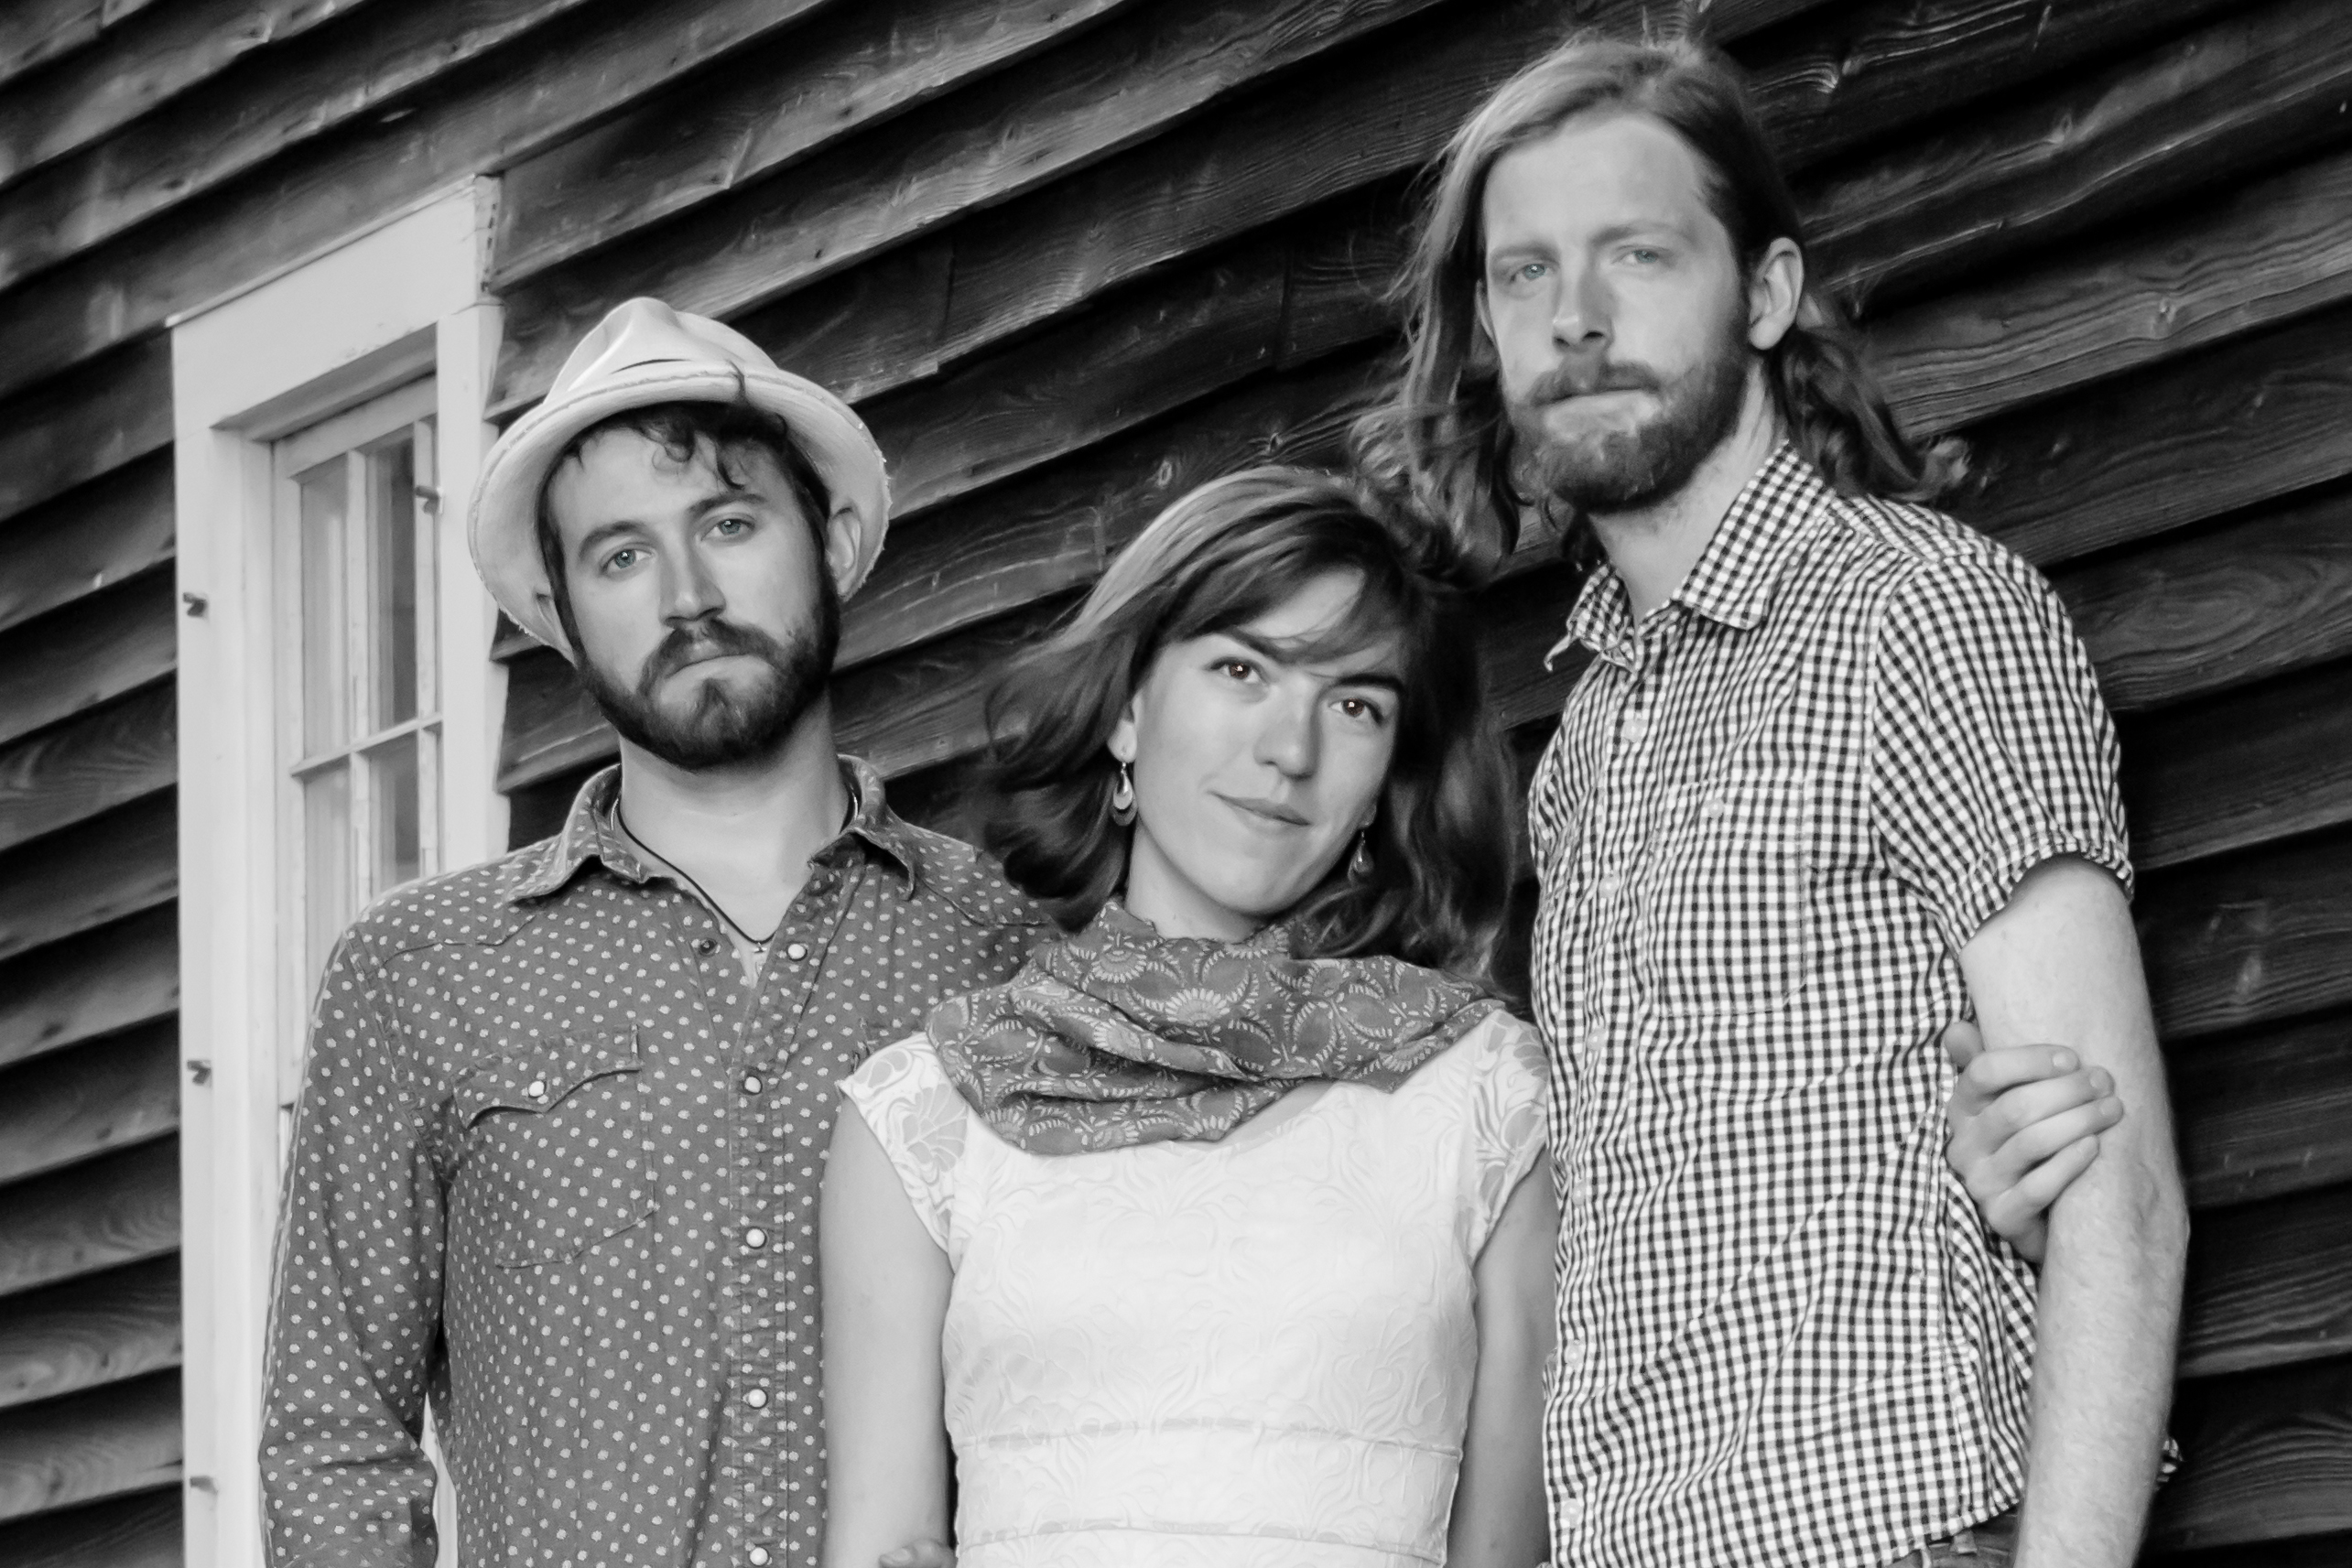 """This is a license granted by Nate Hastings (photographer) to The Stray Birds (band):  This license covers this image of the band captured in Exeter, New Hampshire on June 18, 2016 featuring the band standing beside a barn.  This license grants the band non-exclusive use of this image for use online and in print for paid and unpaid advertising of the band's music, appearances, tours and recordings only.    This license will be active for a period of one year from the date of payment.  It may be renewed, revised or cancelled by mutual agreement between the photographer and the band.  No third-party edits to the image is permitted other than cropping for appropriate sizing for the medium.  No additional uses are permitted without obtaining the photographer's written permission.    Use of images will be credited to """"Nate Hastings"""" whenever practical."""